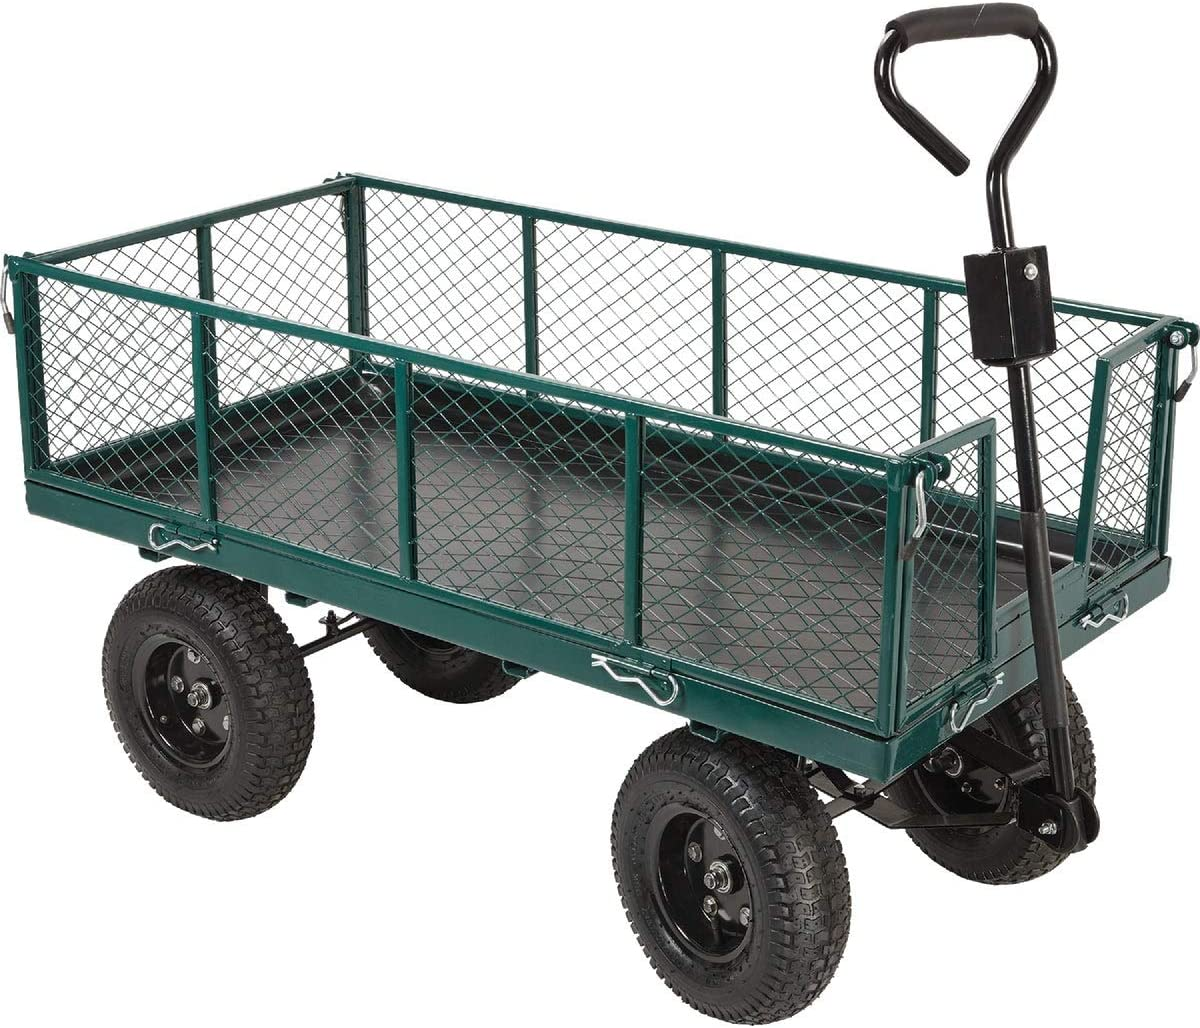 5% OFF Do it Best GS TC4205C Steel Cart Max 54% OFF with Collapsible Yard Sides